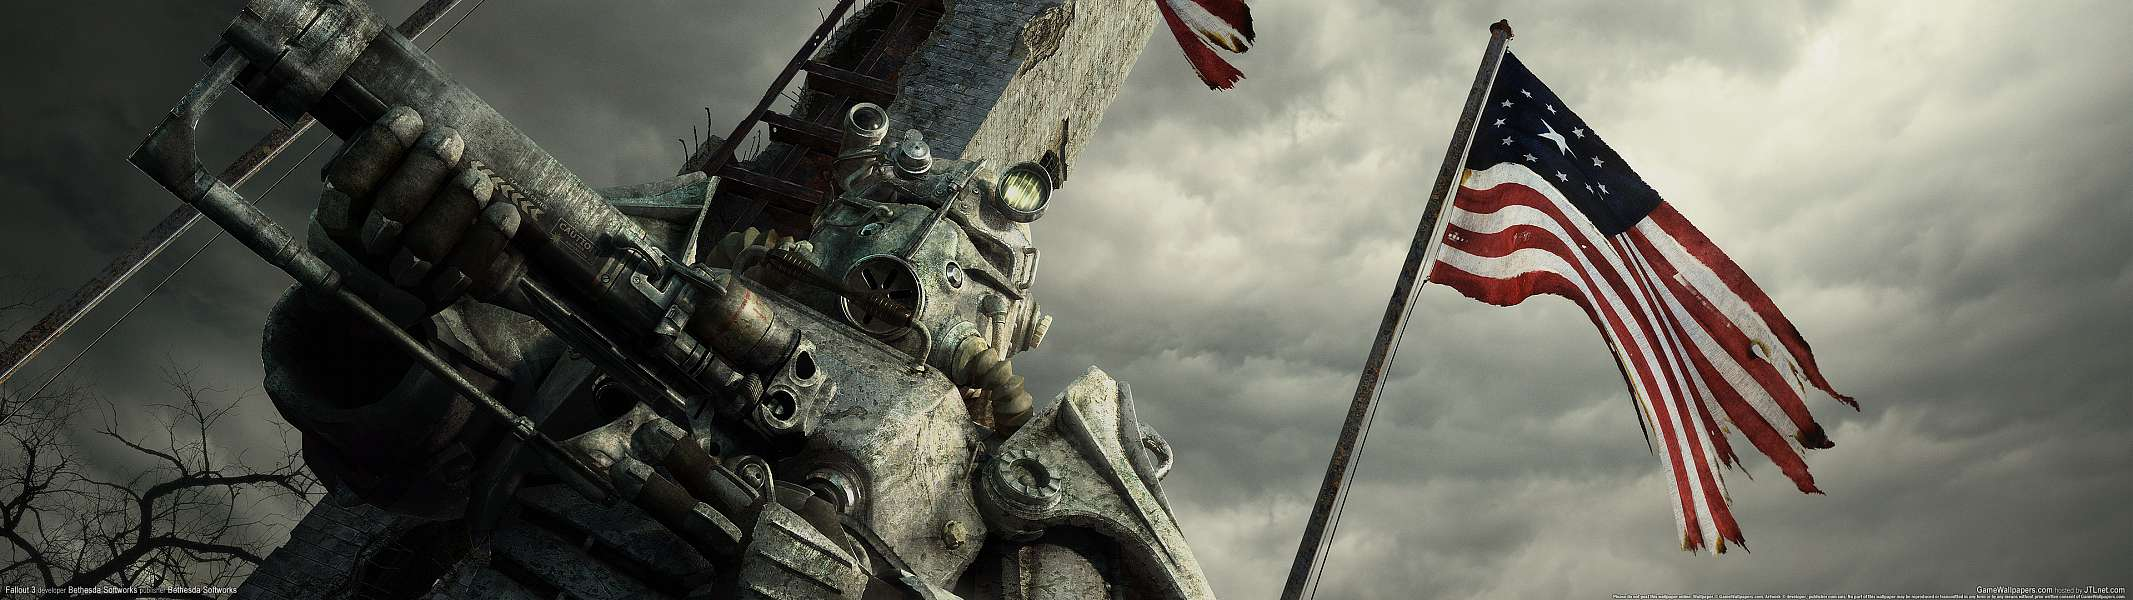 Fallout 3 dual screen wallpaper or background